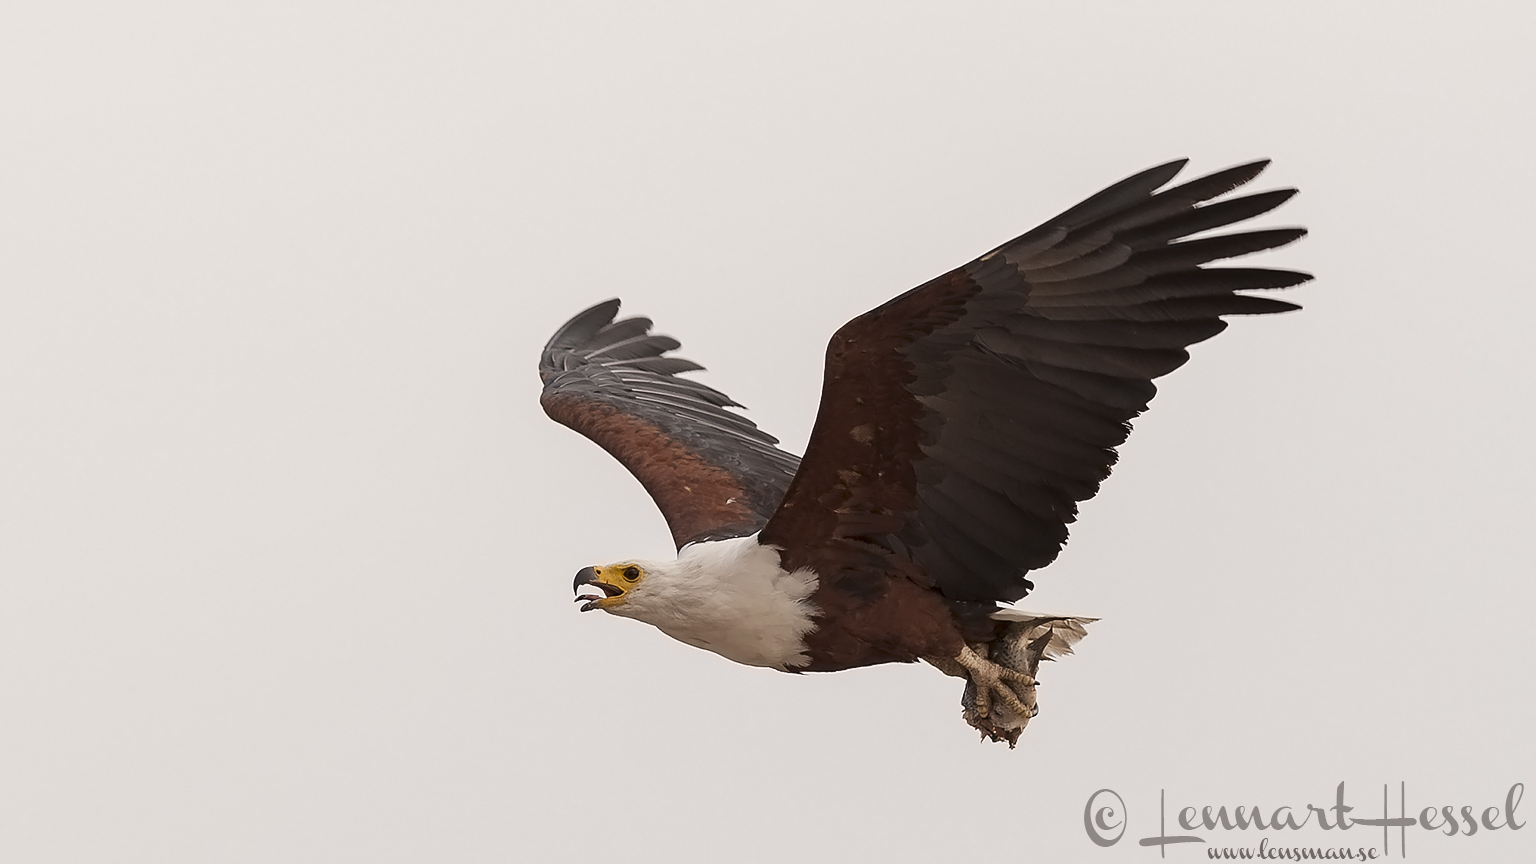 African Fish-Eagle with catch at Chobe River area, Botswana